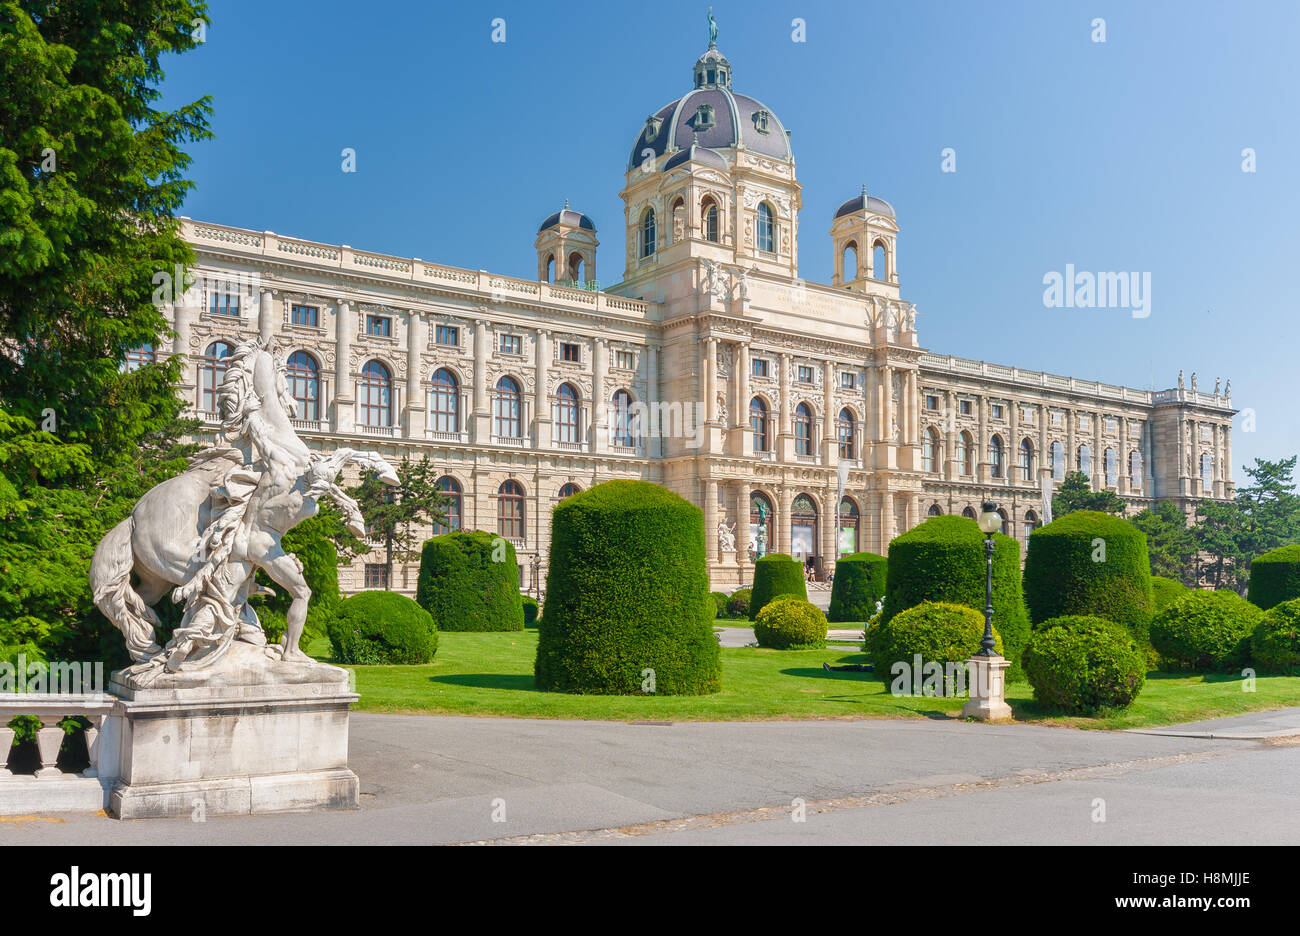 Classic view of famous Naturhistorisches Museum (Natural History Museum) with park and sculpture in Vienna, Austria - Stock Image